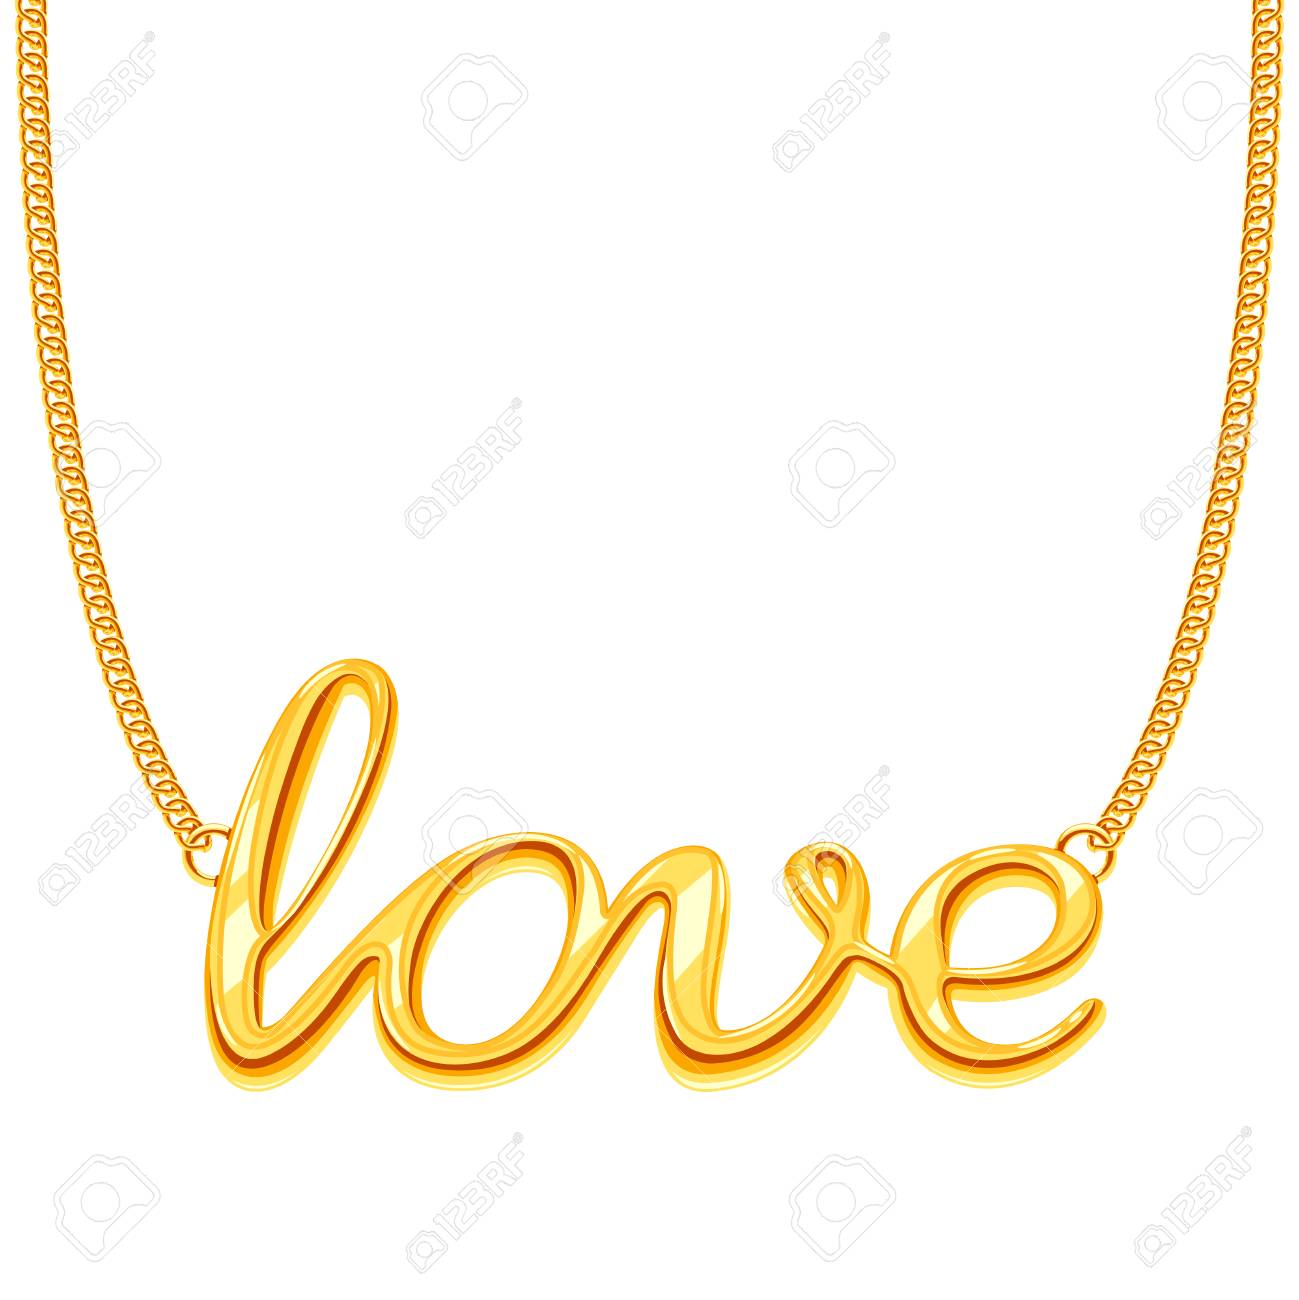 Gold Chain Necklace With Love Word Pendant Vector Il Ration Golden Decoration Jewellery Stock Vector